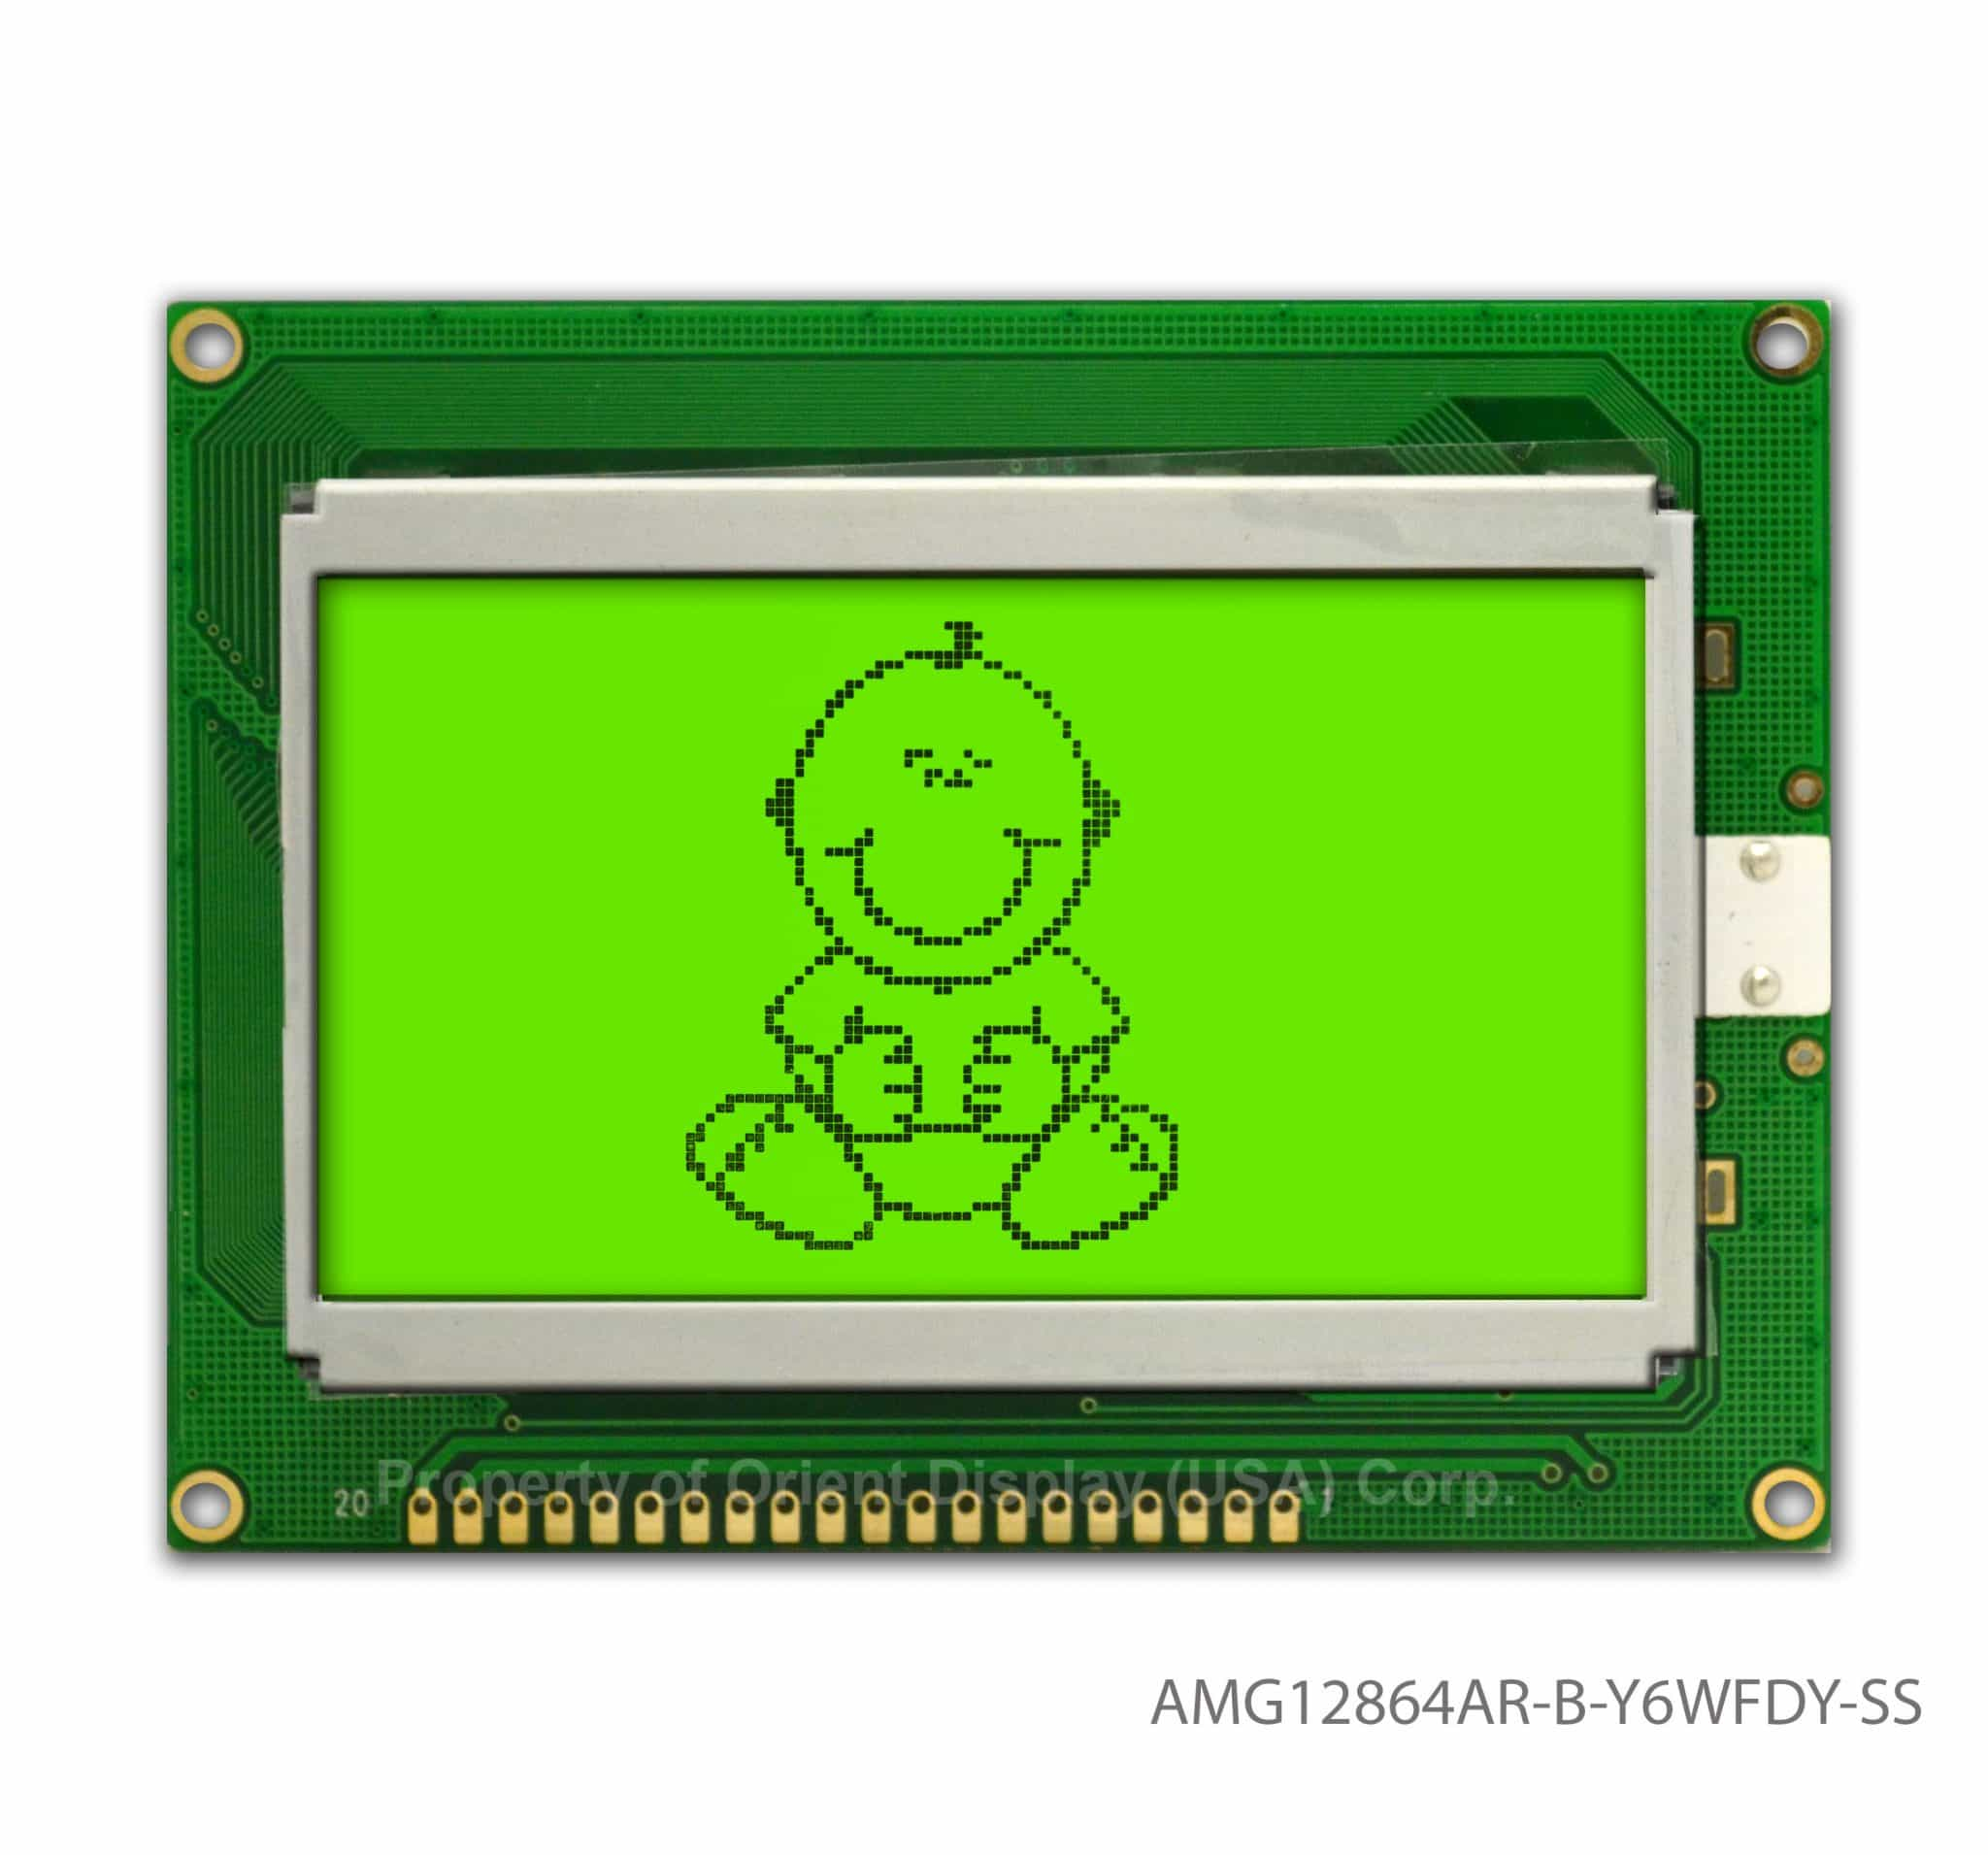 "AMG12864AR-B-Y6WFDY-SS (2.9"" 128x64 Graphic LCD Module) NO DC-DC"